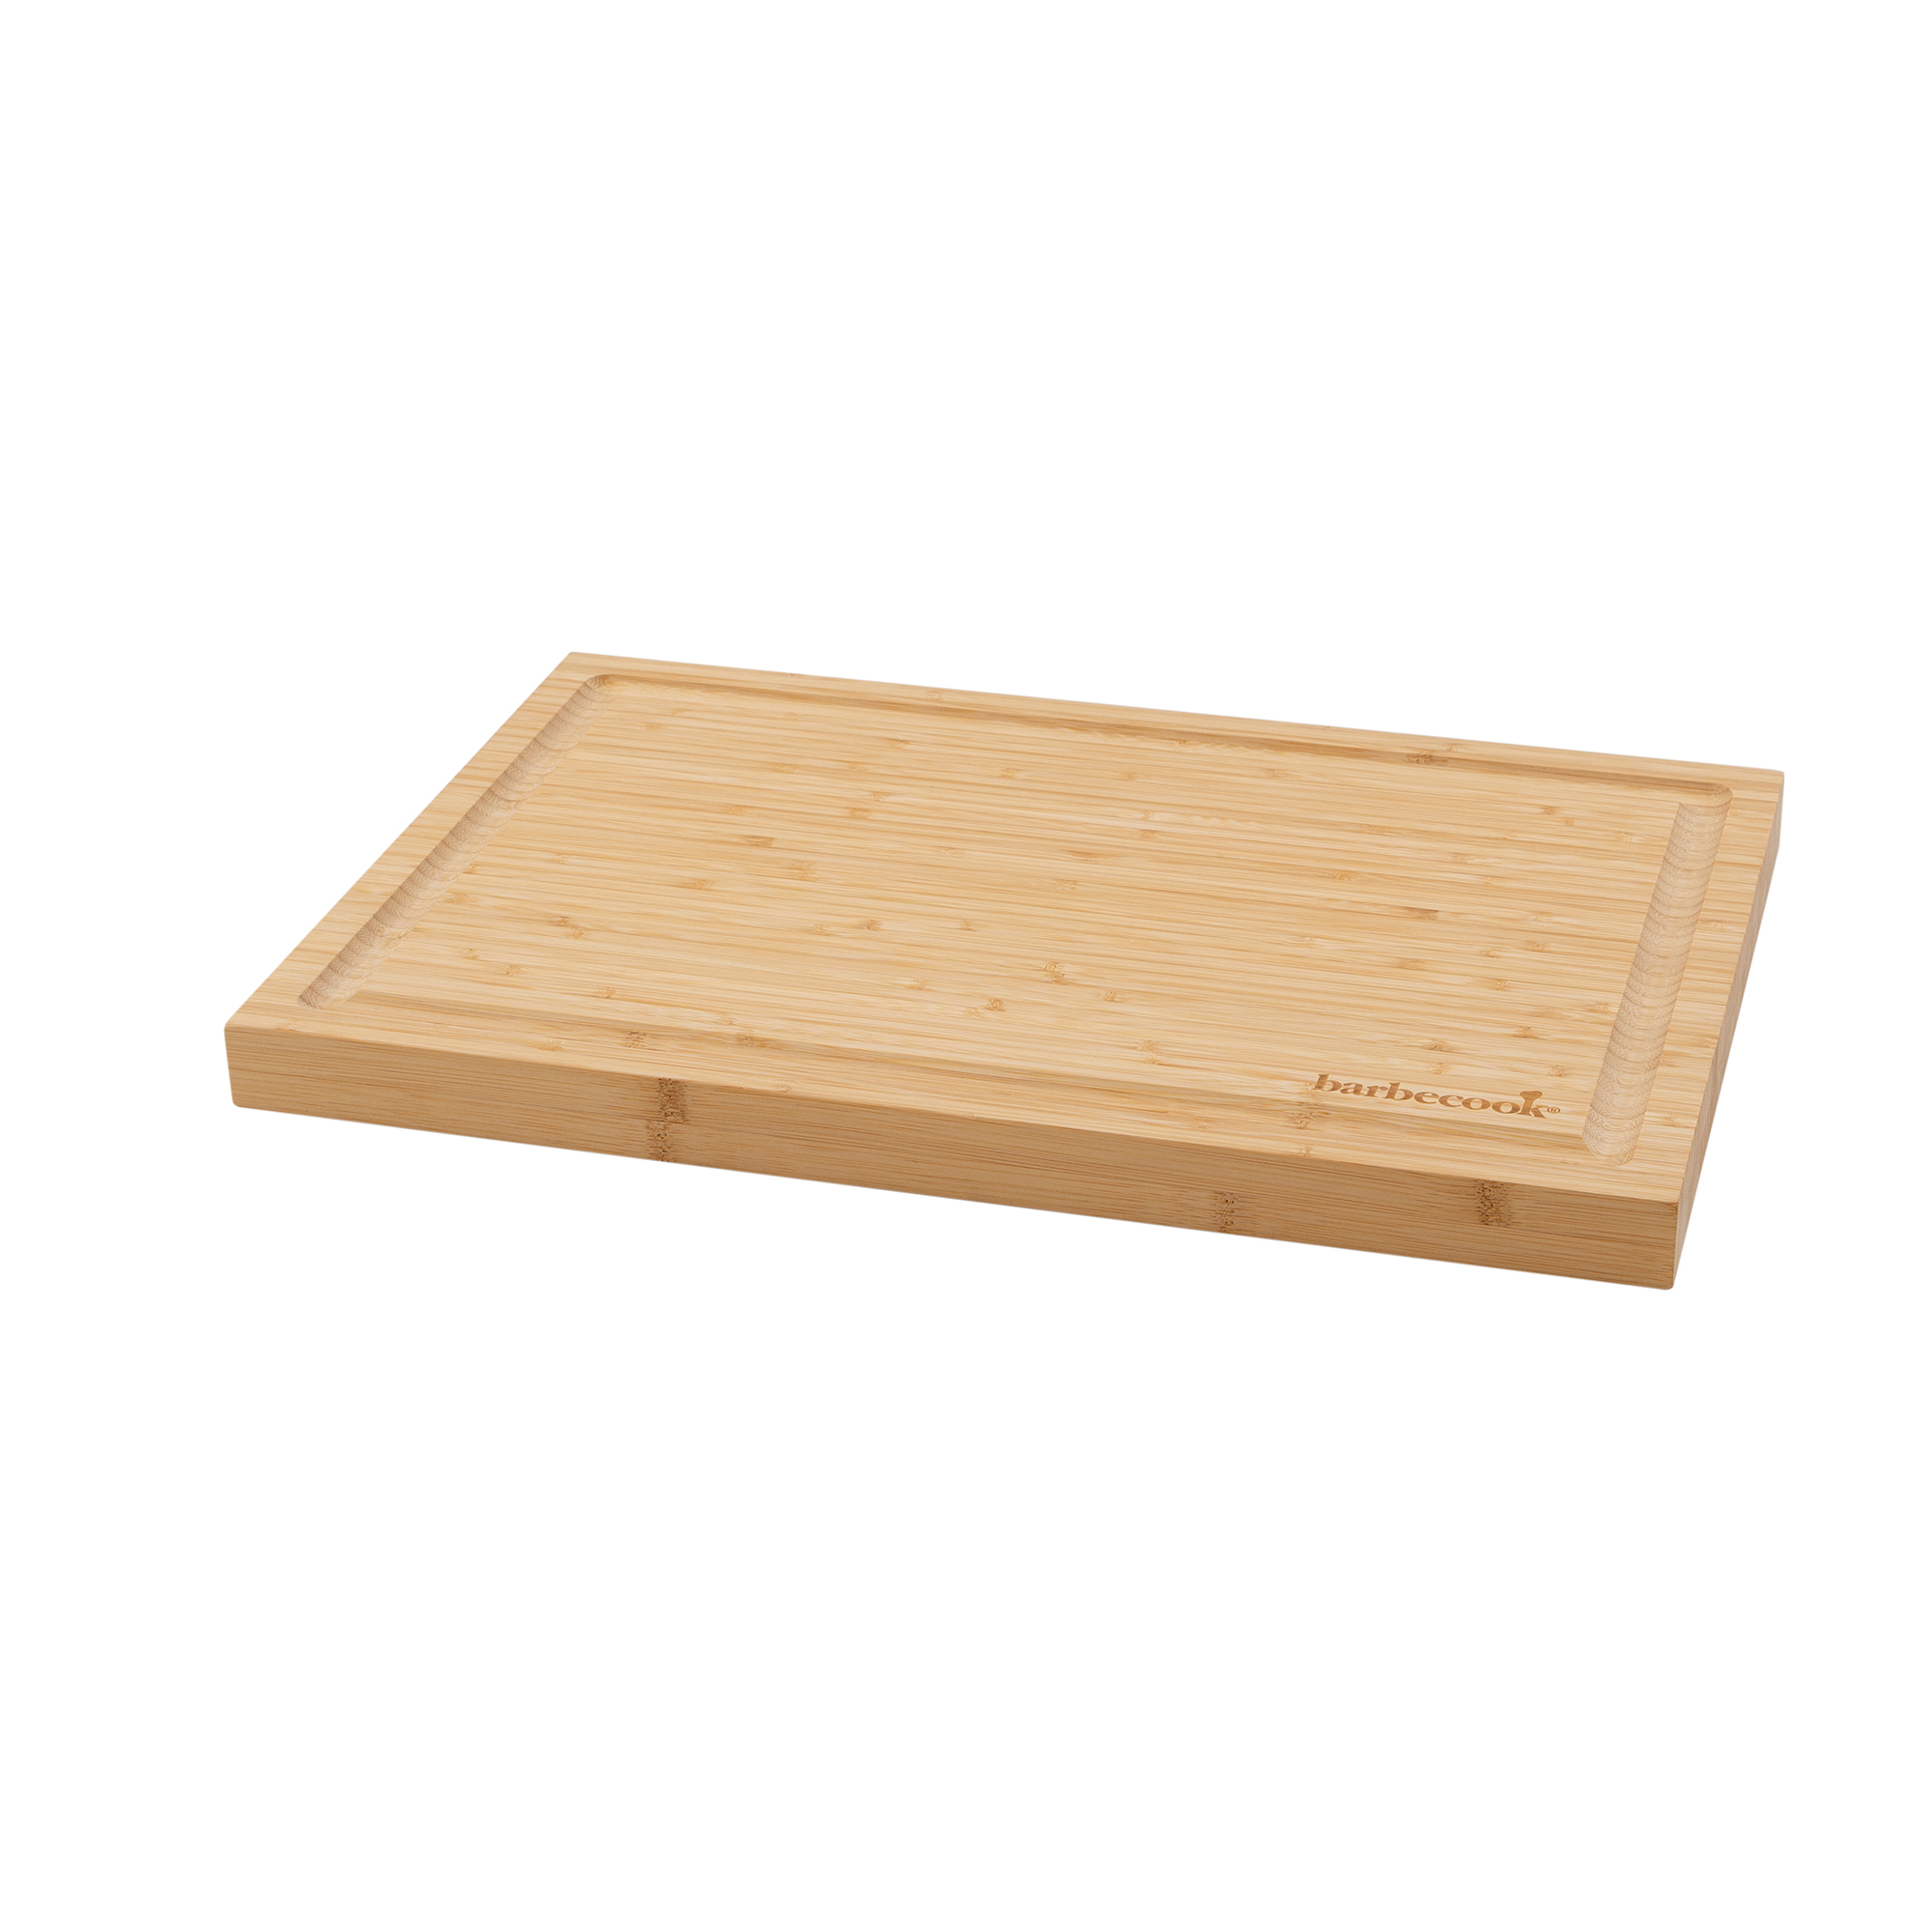 Barbecook bamboo cutting board with groove 46.5x28